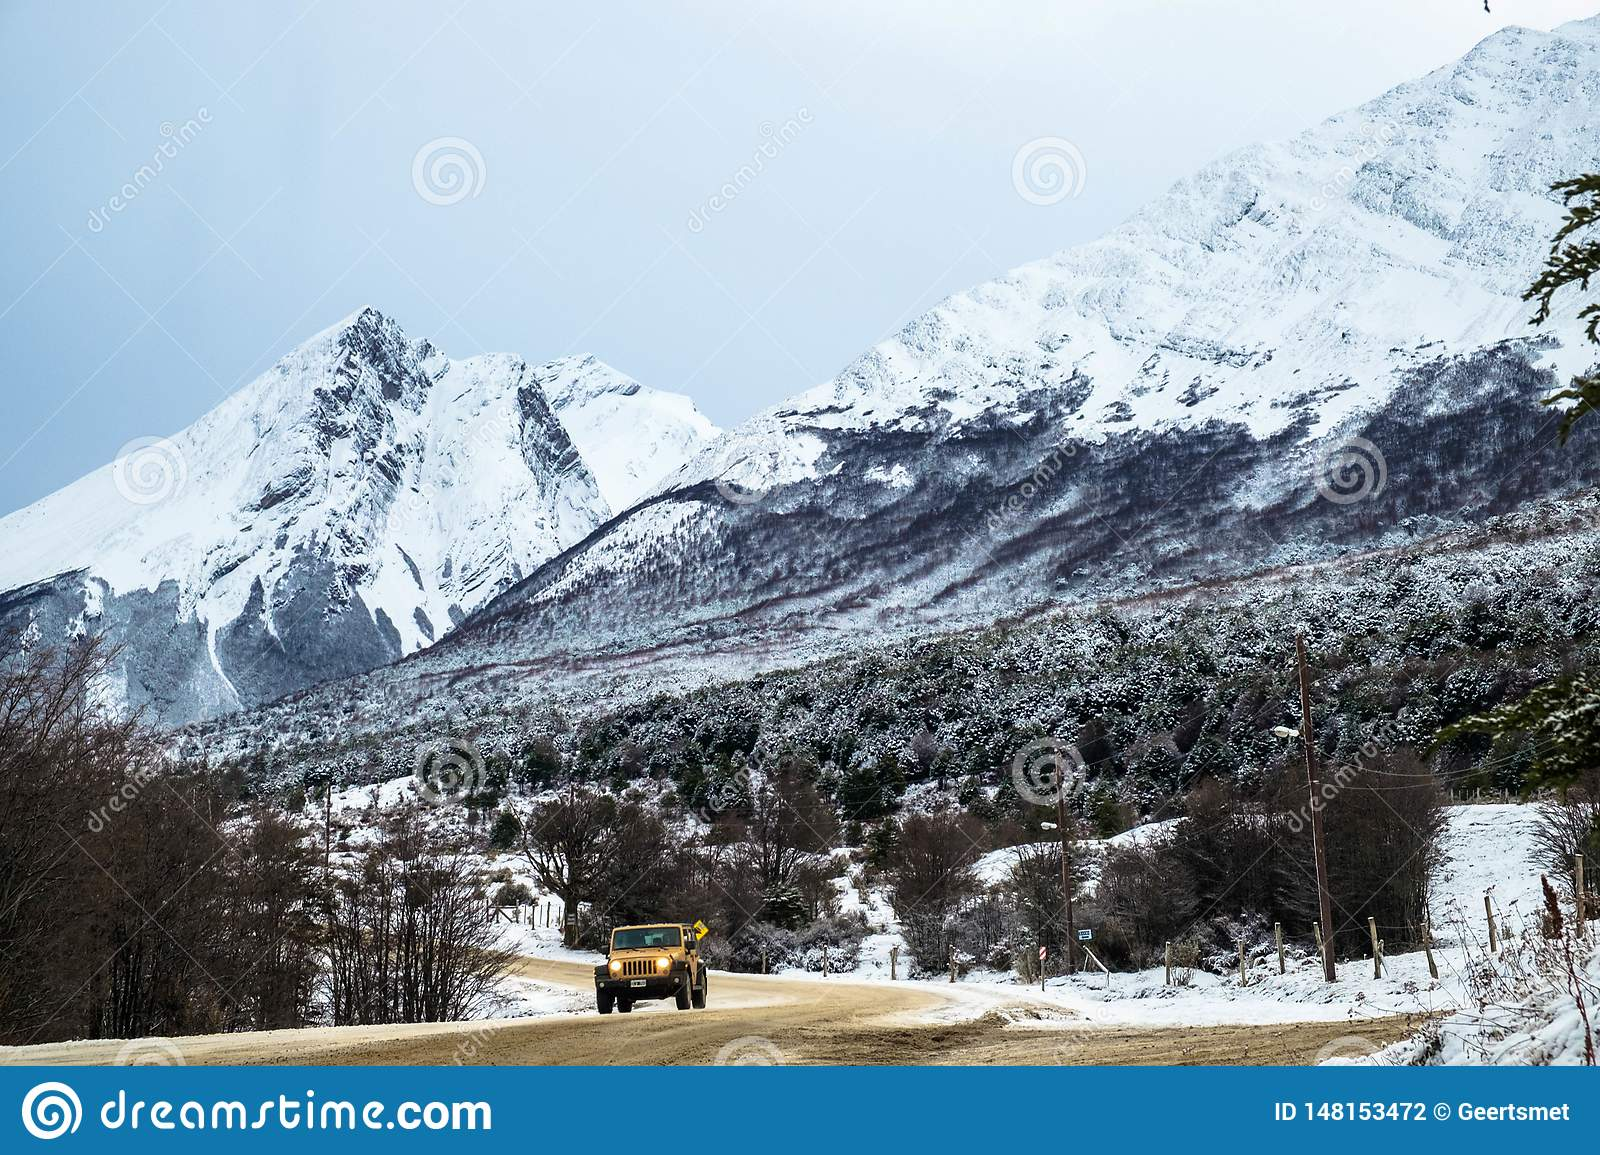 Off-road vehicle in a winter landscape near Ushuaia